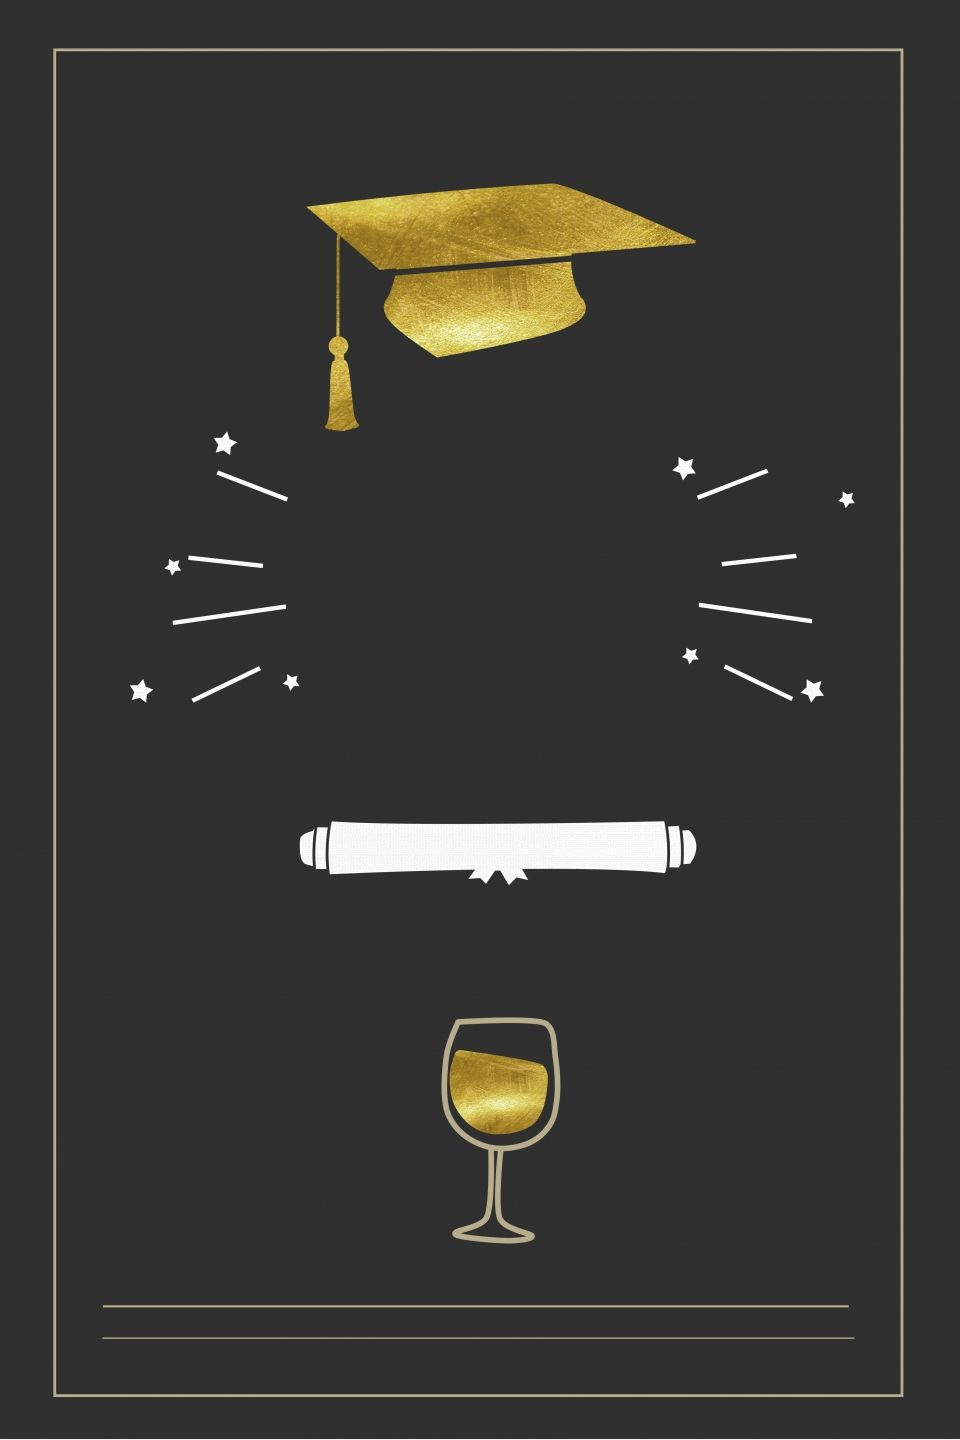 College Graduation Party Poster Background Template College Graduation Parties Graduation Poster Party Poster